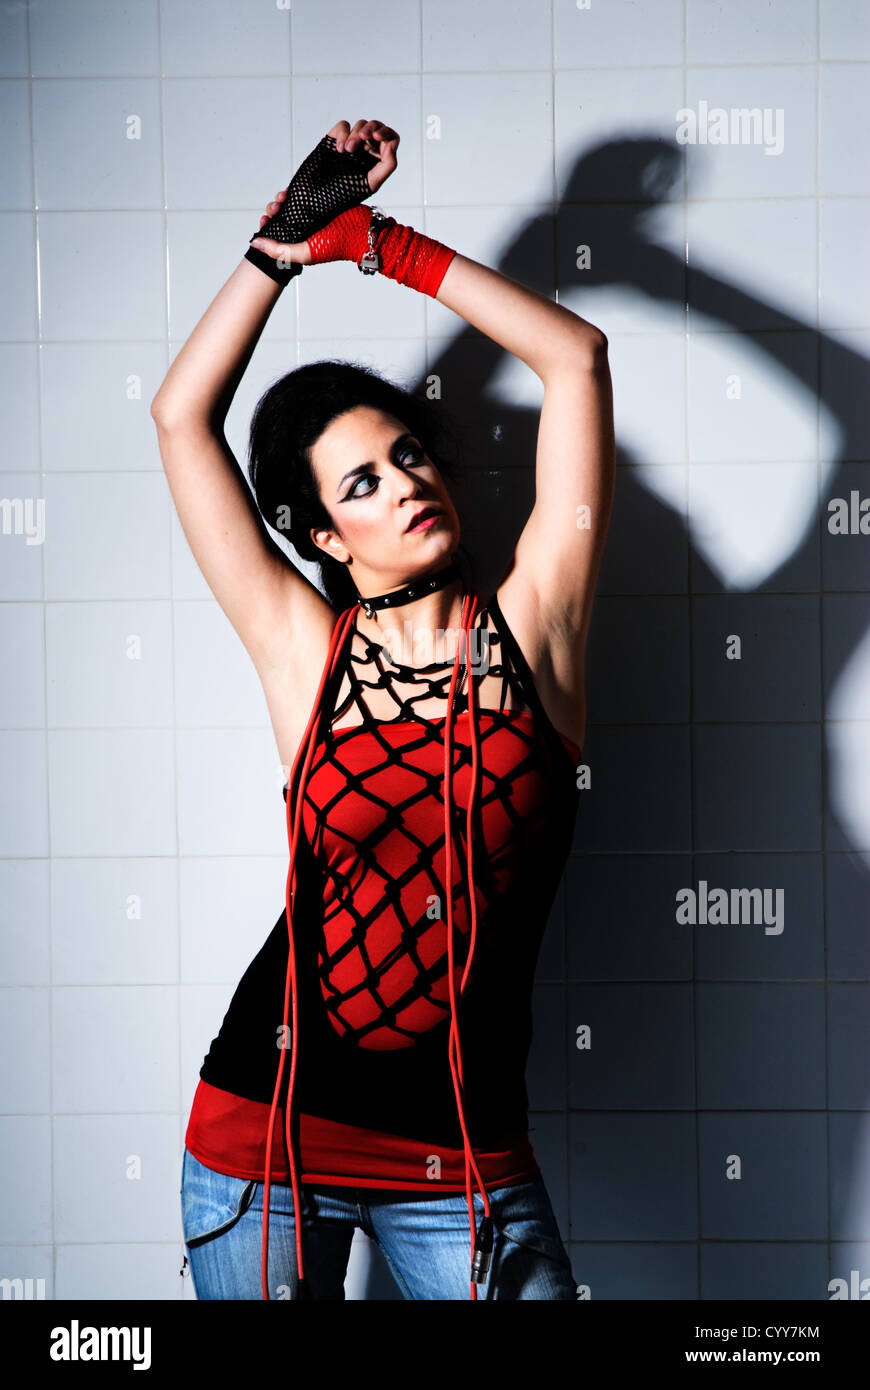 Punk Girl posing hard on an 'underground' background high contrast - Stock Image